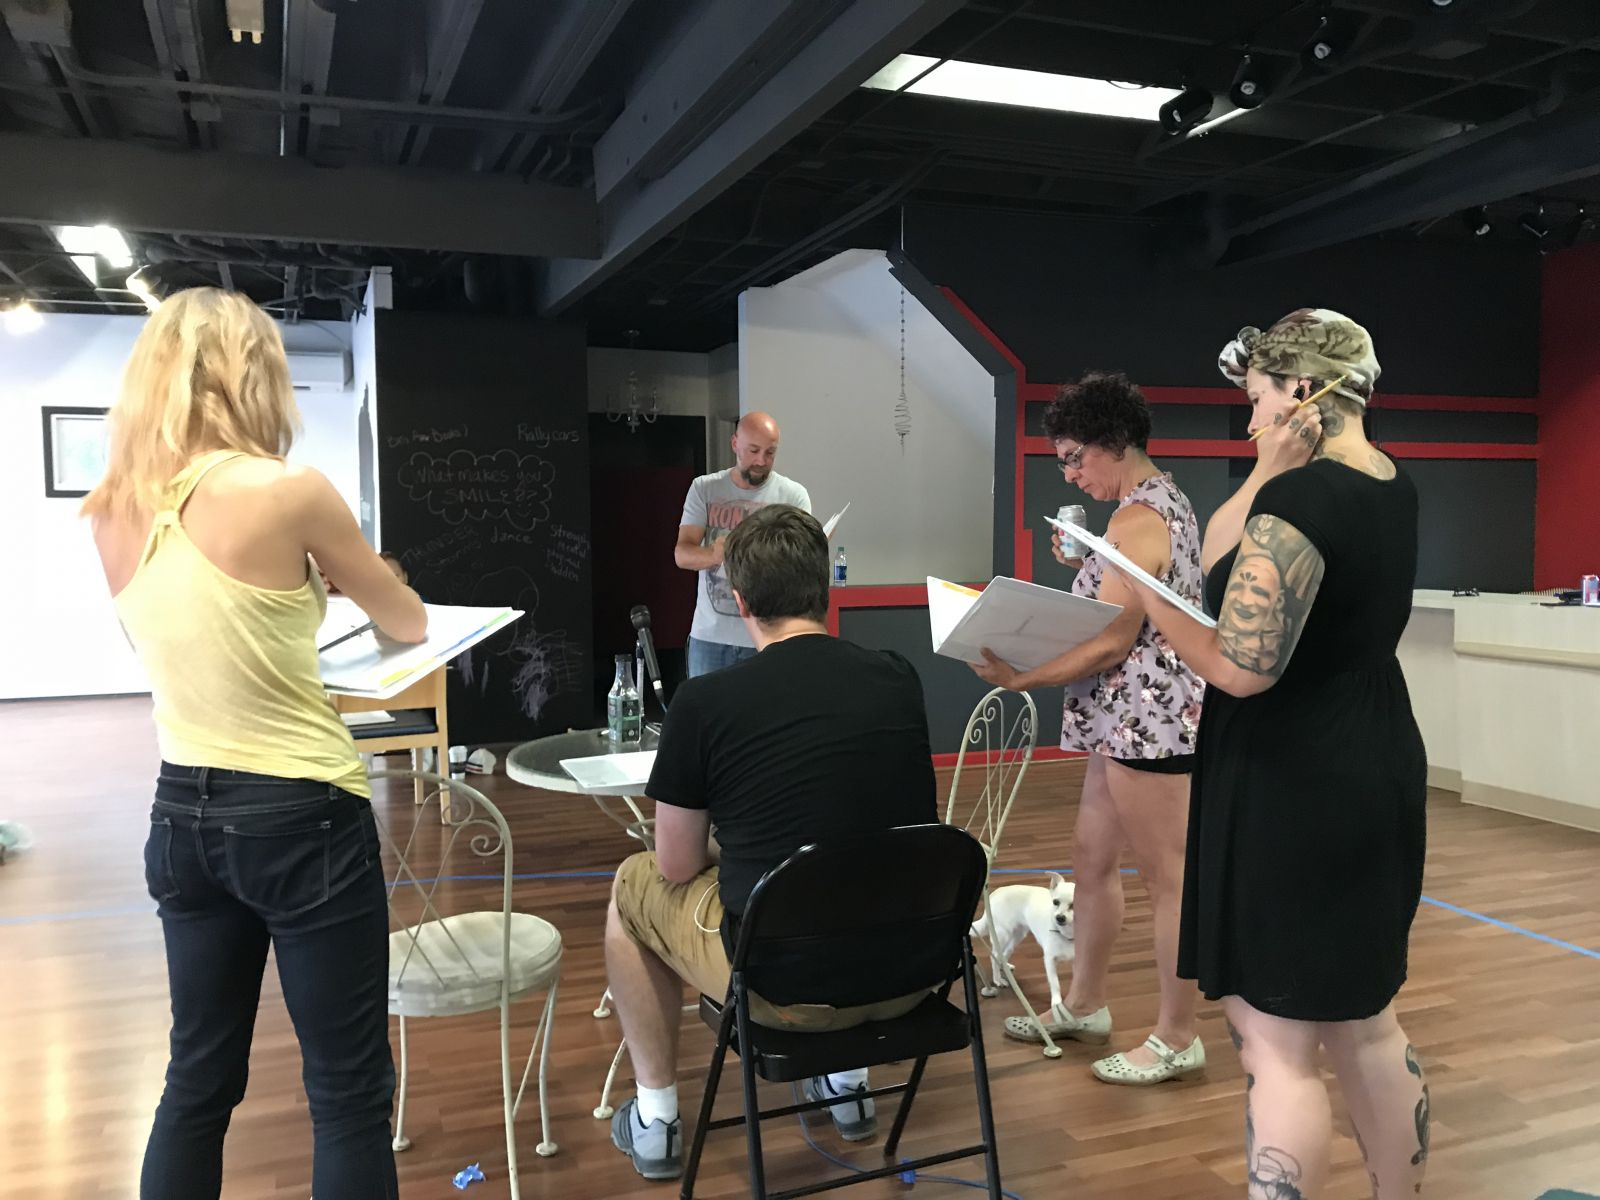 The Untold Story of Two Days in St. Cloud, an Original Play by Anthony Schrock